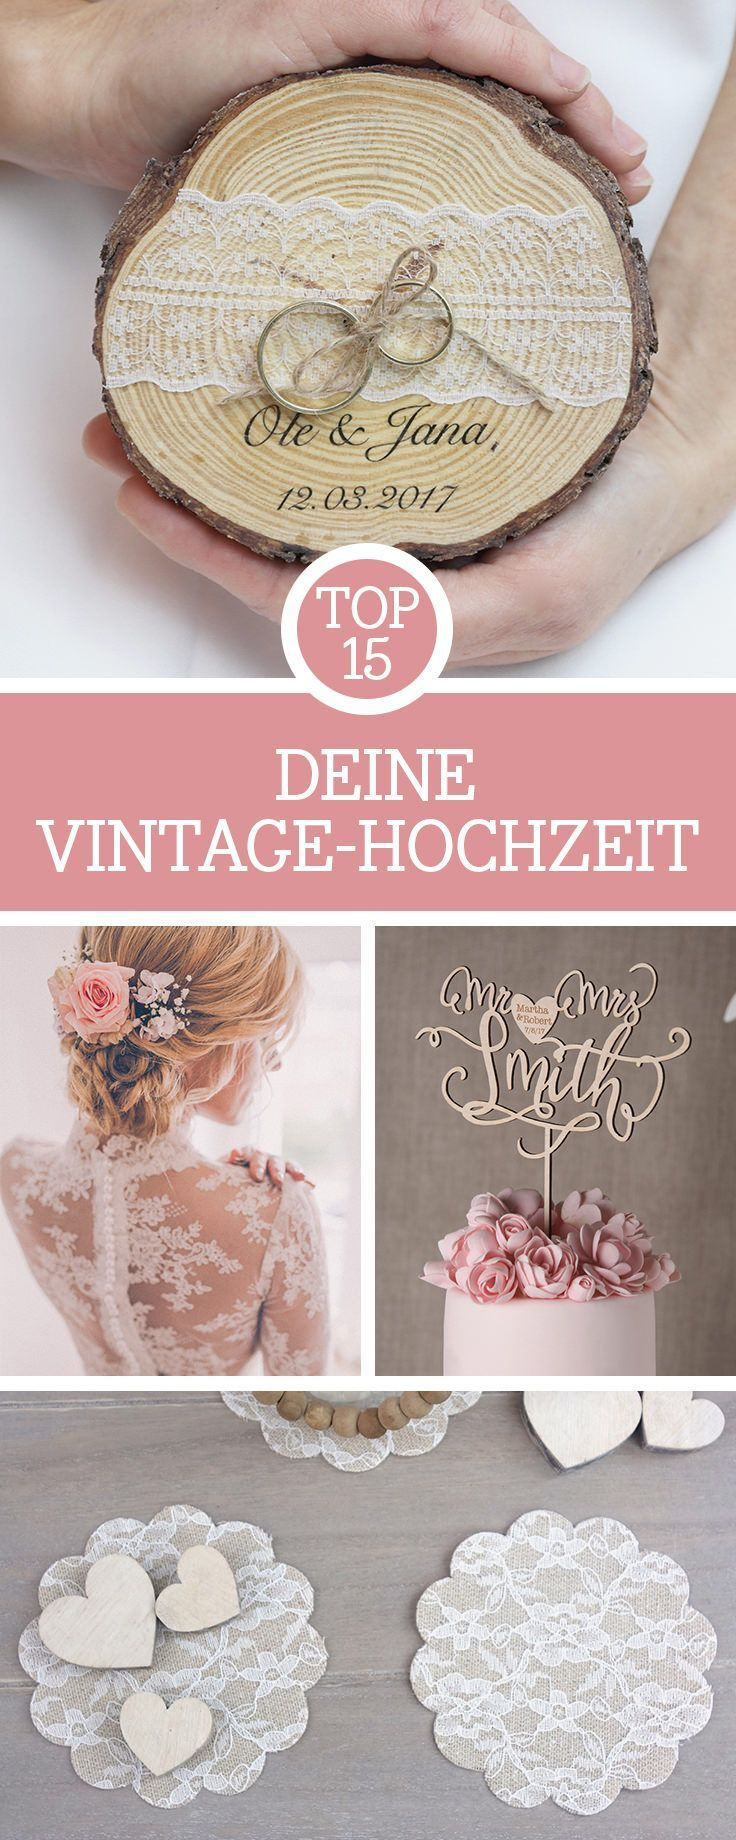 25 best ideas about vintage hochzeit on pinterest hochzeitsdeko vintage hochzeit deko and. Black Bedroom Furniture Sets. Home Design Ideas